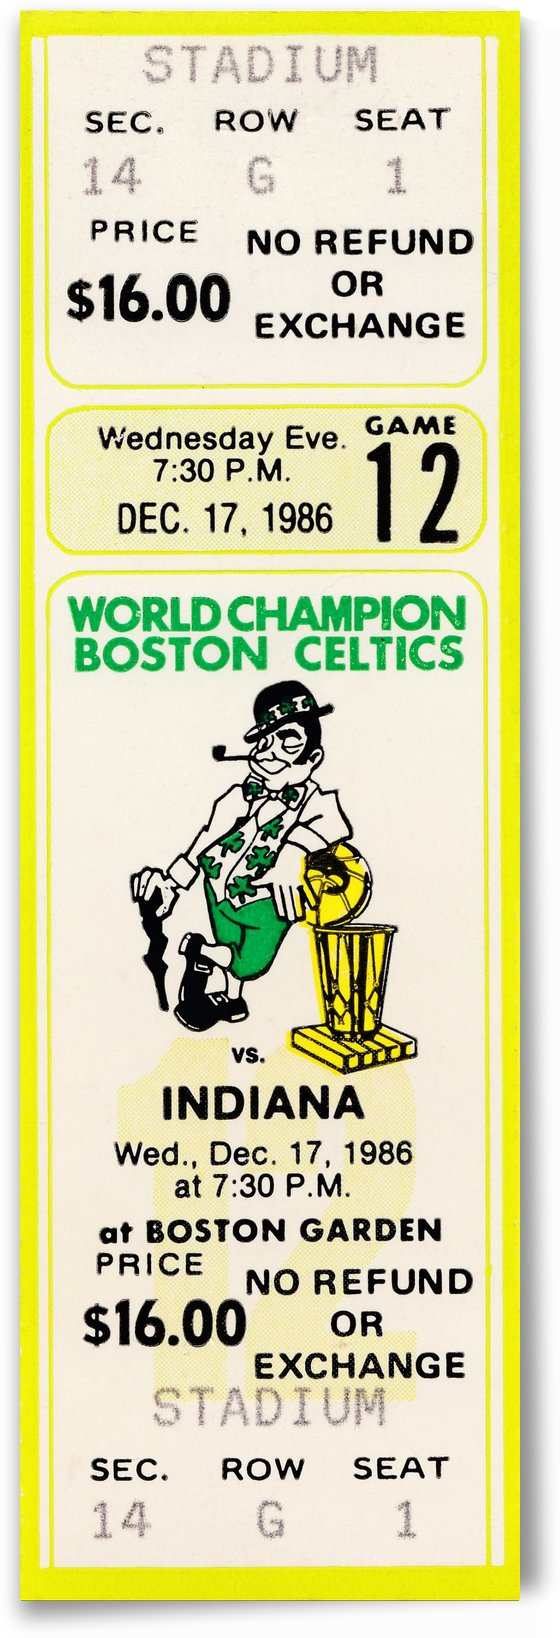 1986 boston celtics indiana pacers ticket stub art 1 by Row One Brand